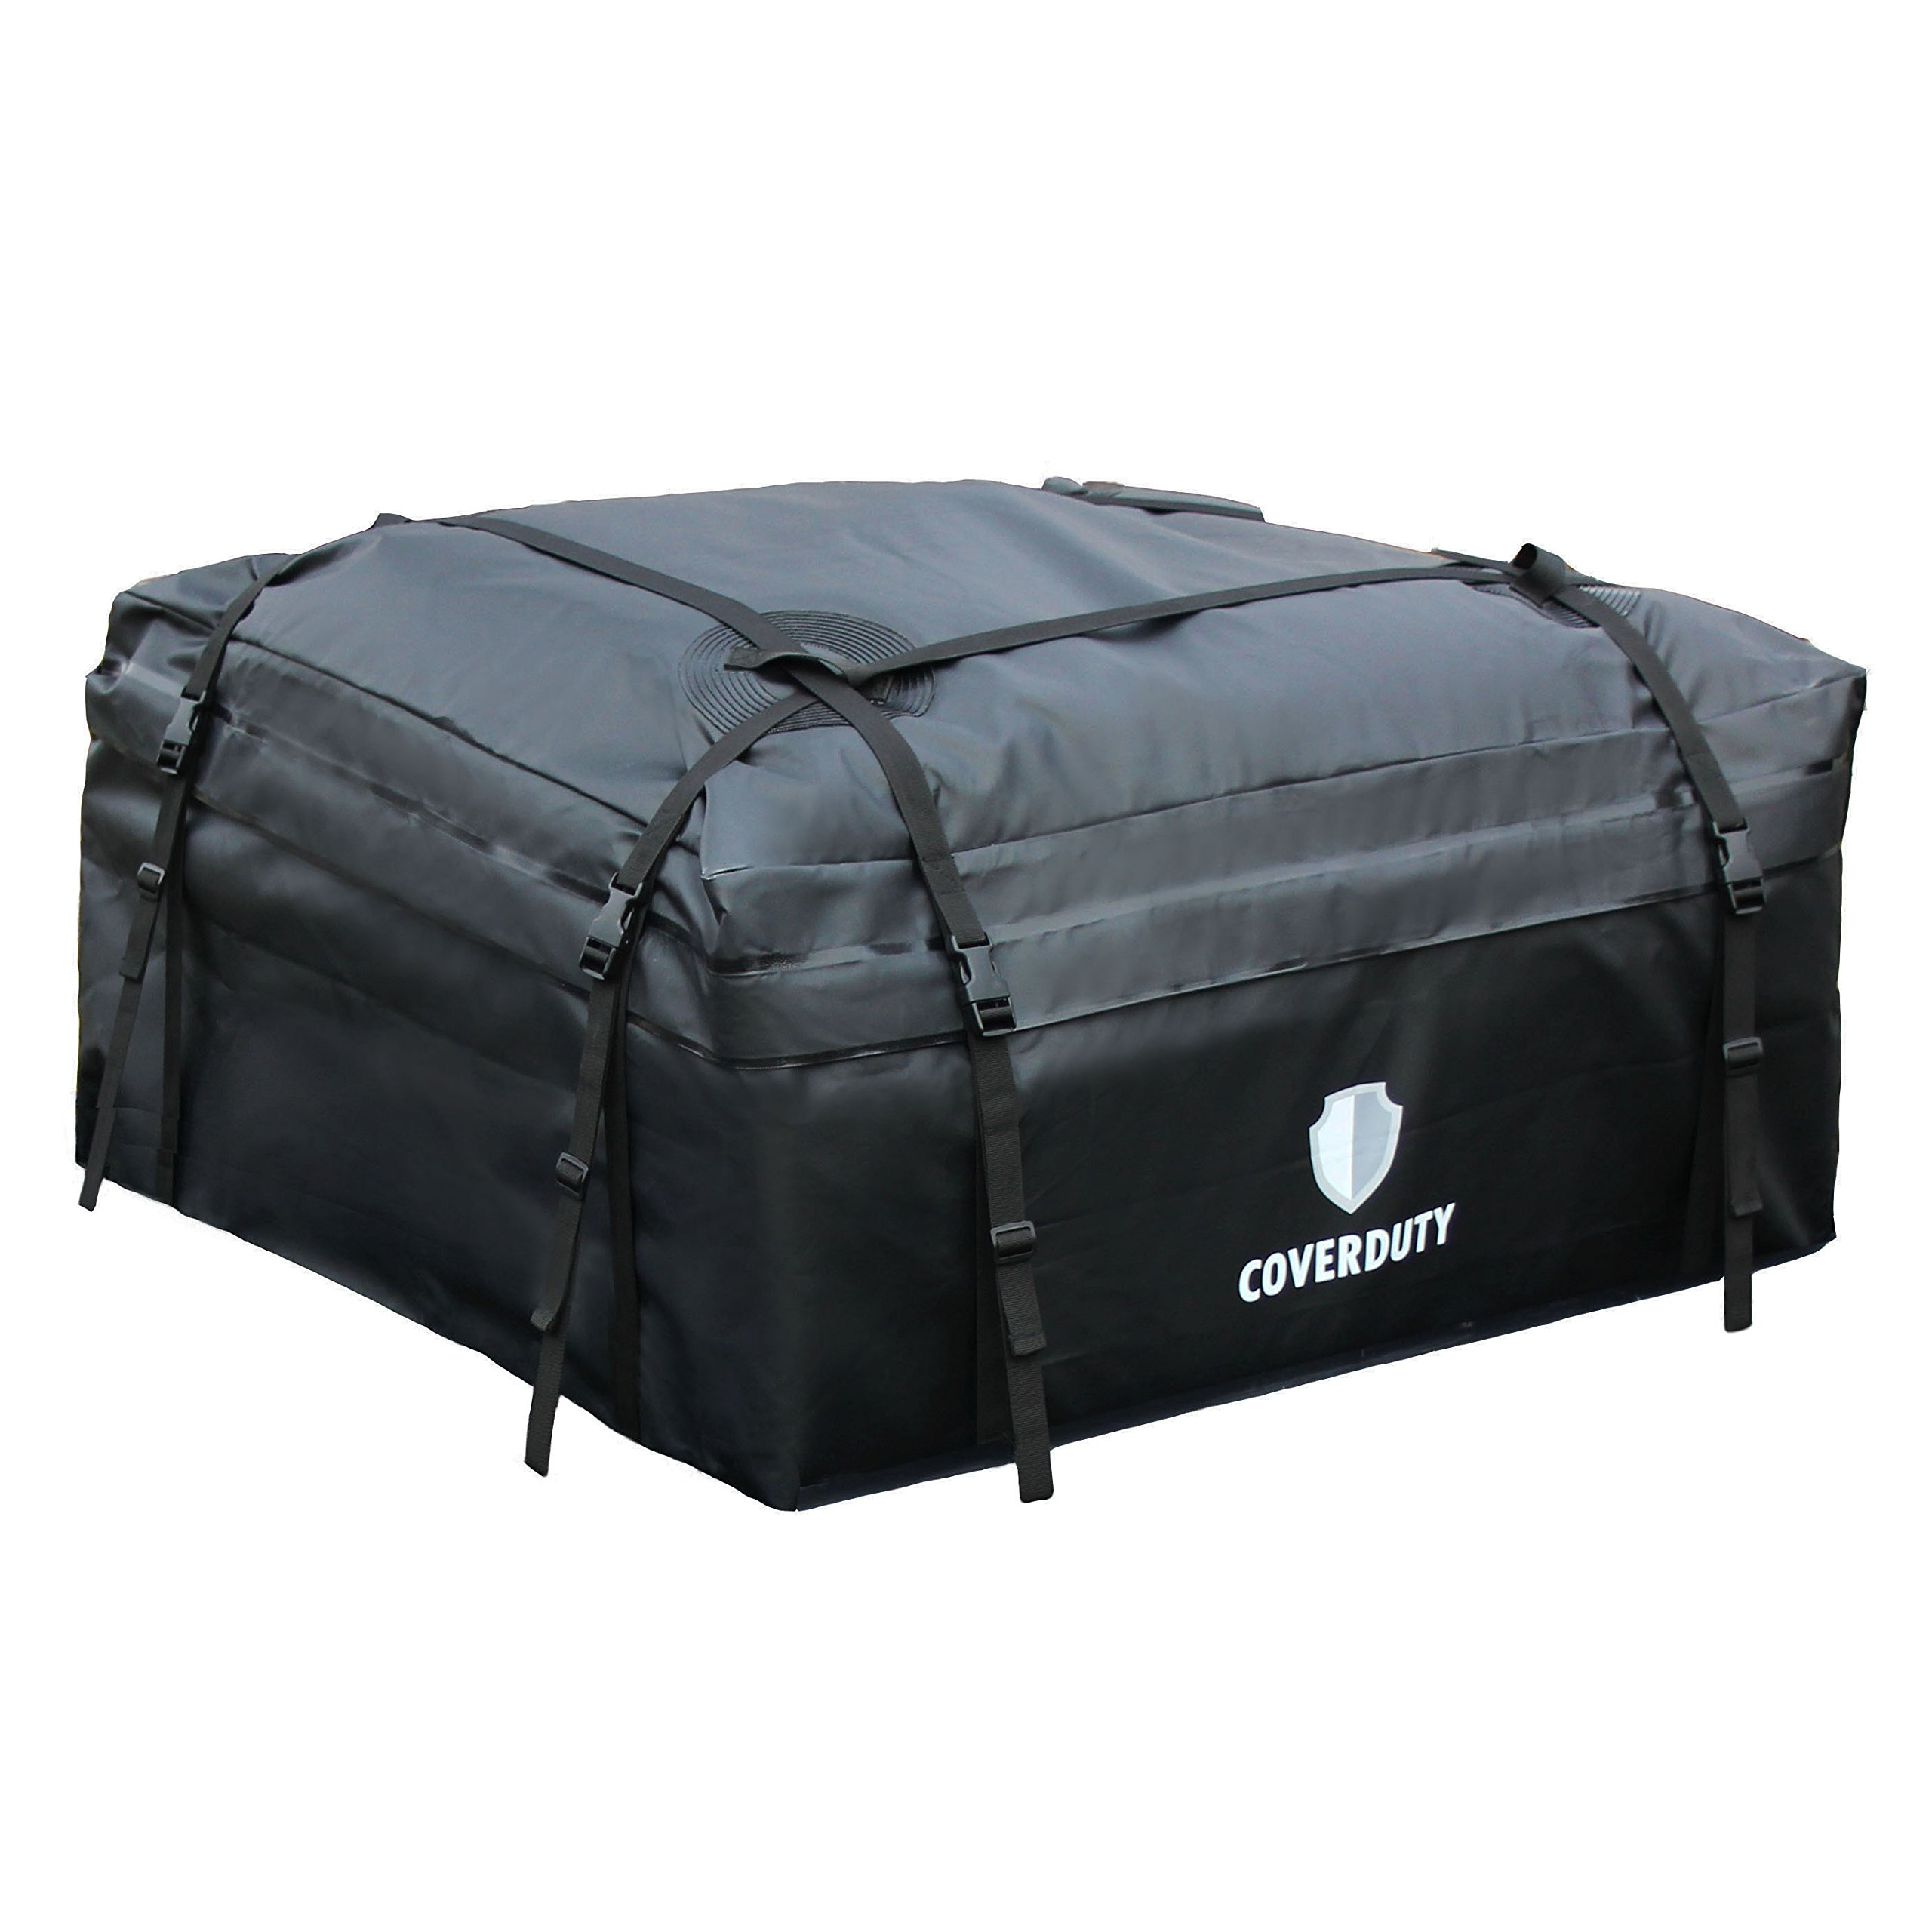 Cover Duty Waterproof Car Top Carrier – Easy to Install Roof Top Cargo Carrier, Extremely Durable Weather Resistant